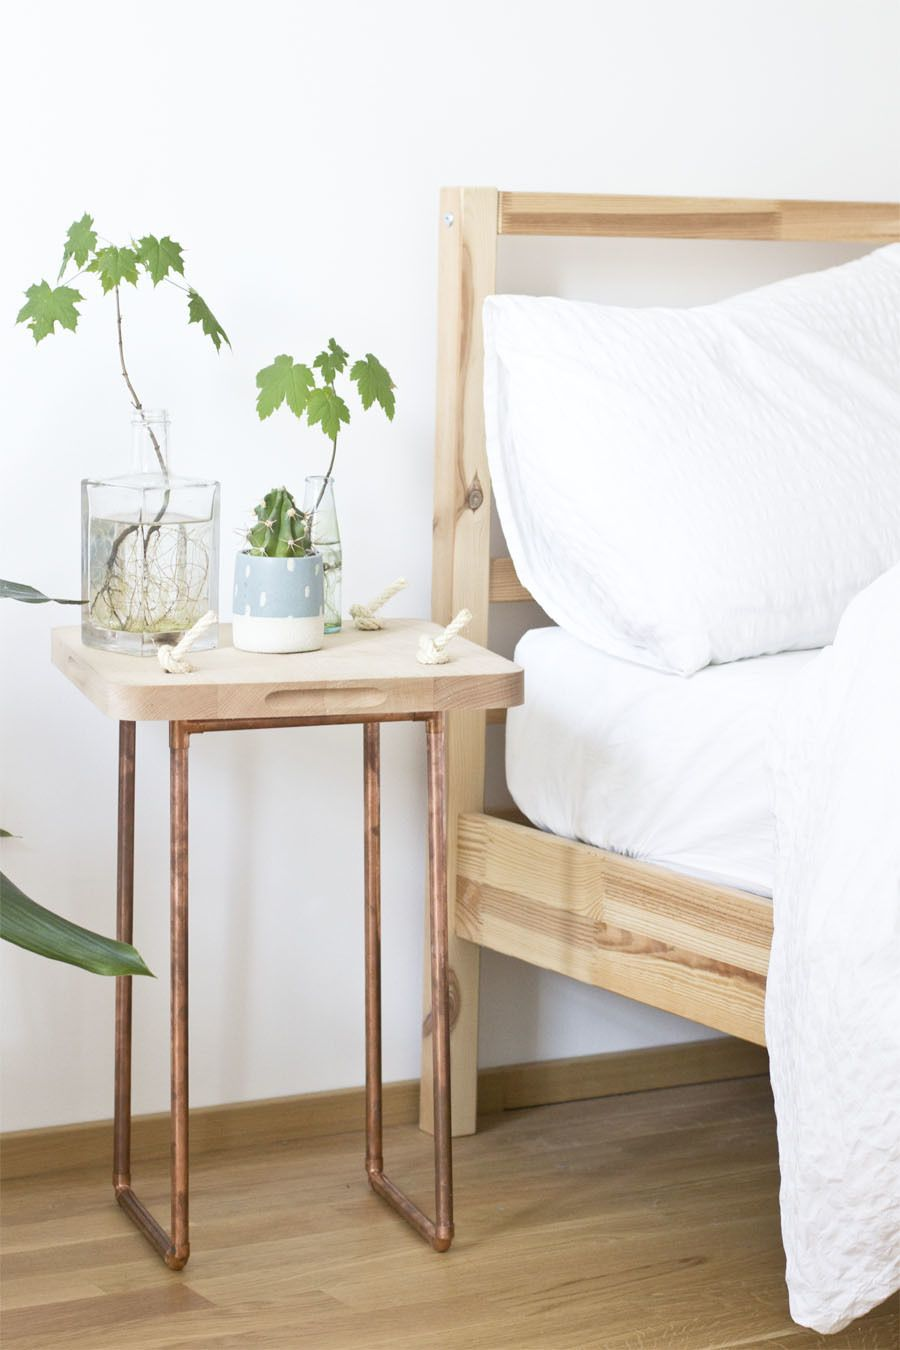 Buy john lewis wood and white metal clothes rail online at ...